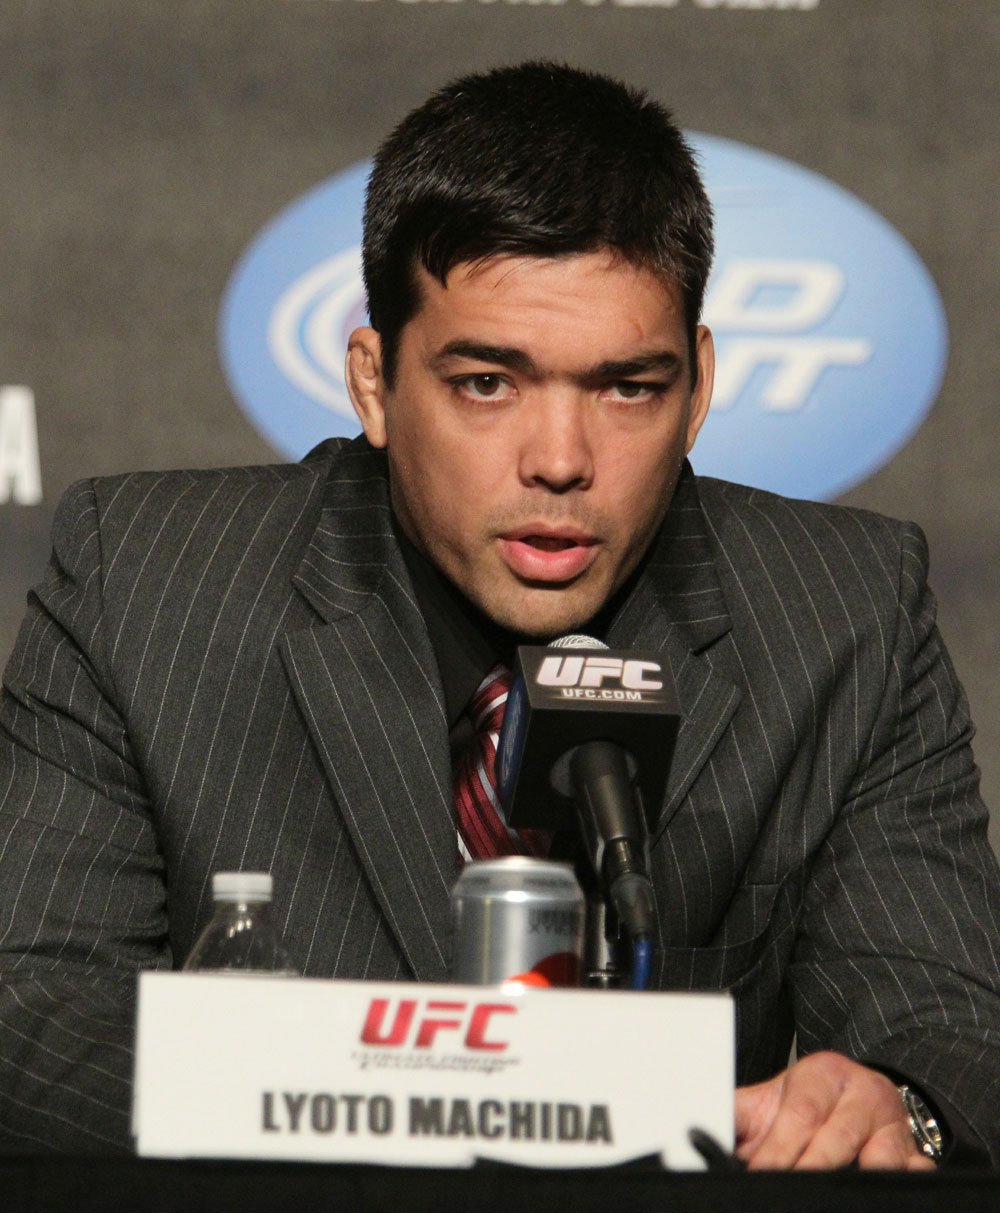 Lyoto &quot;The Dragon&quot; Machida at the UFC 123 pre-fight press conference at the MGM Grand Hotel and Casino in Detroit, Michigan on November 17, 2010  (Photo by Josh Hedges/Zuffa LLC/Zuffa LLC via Getty Images)